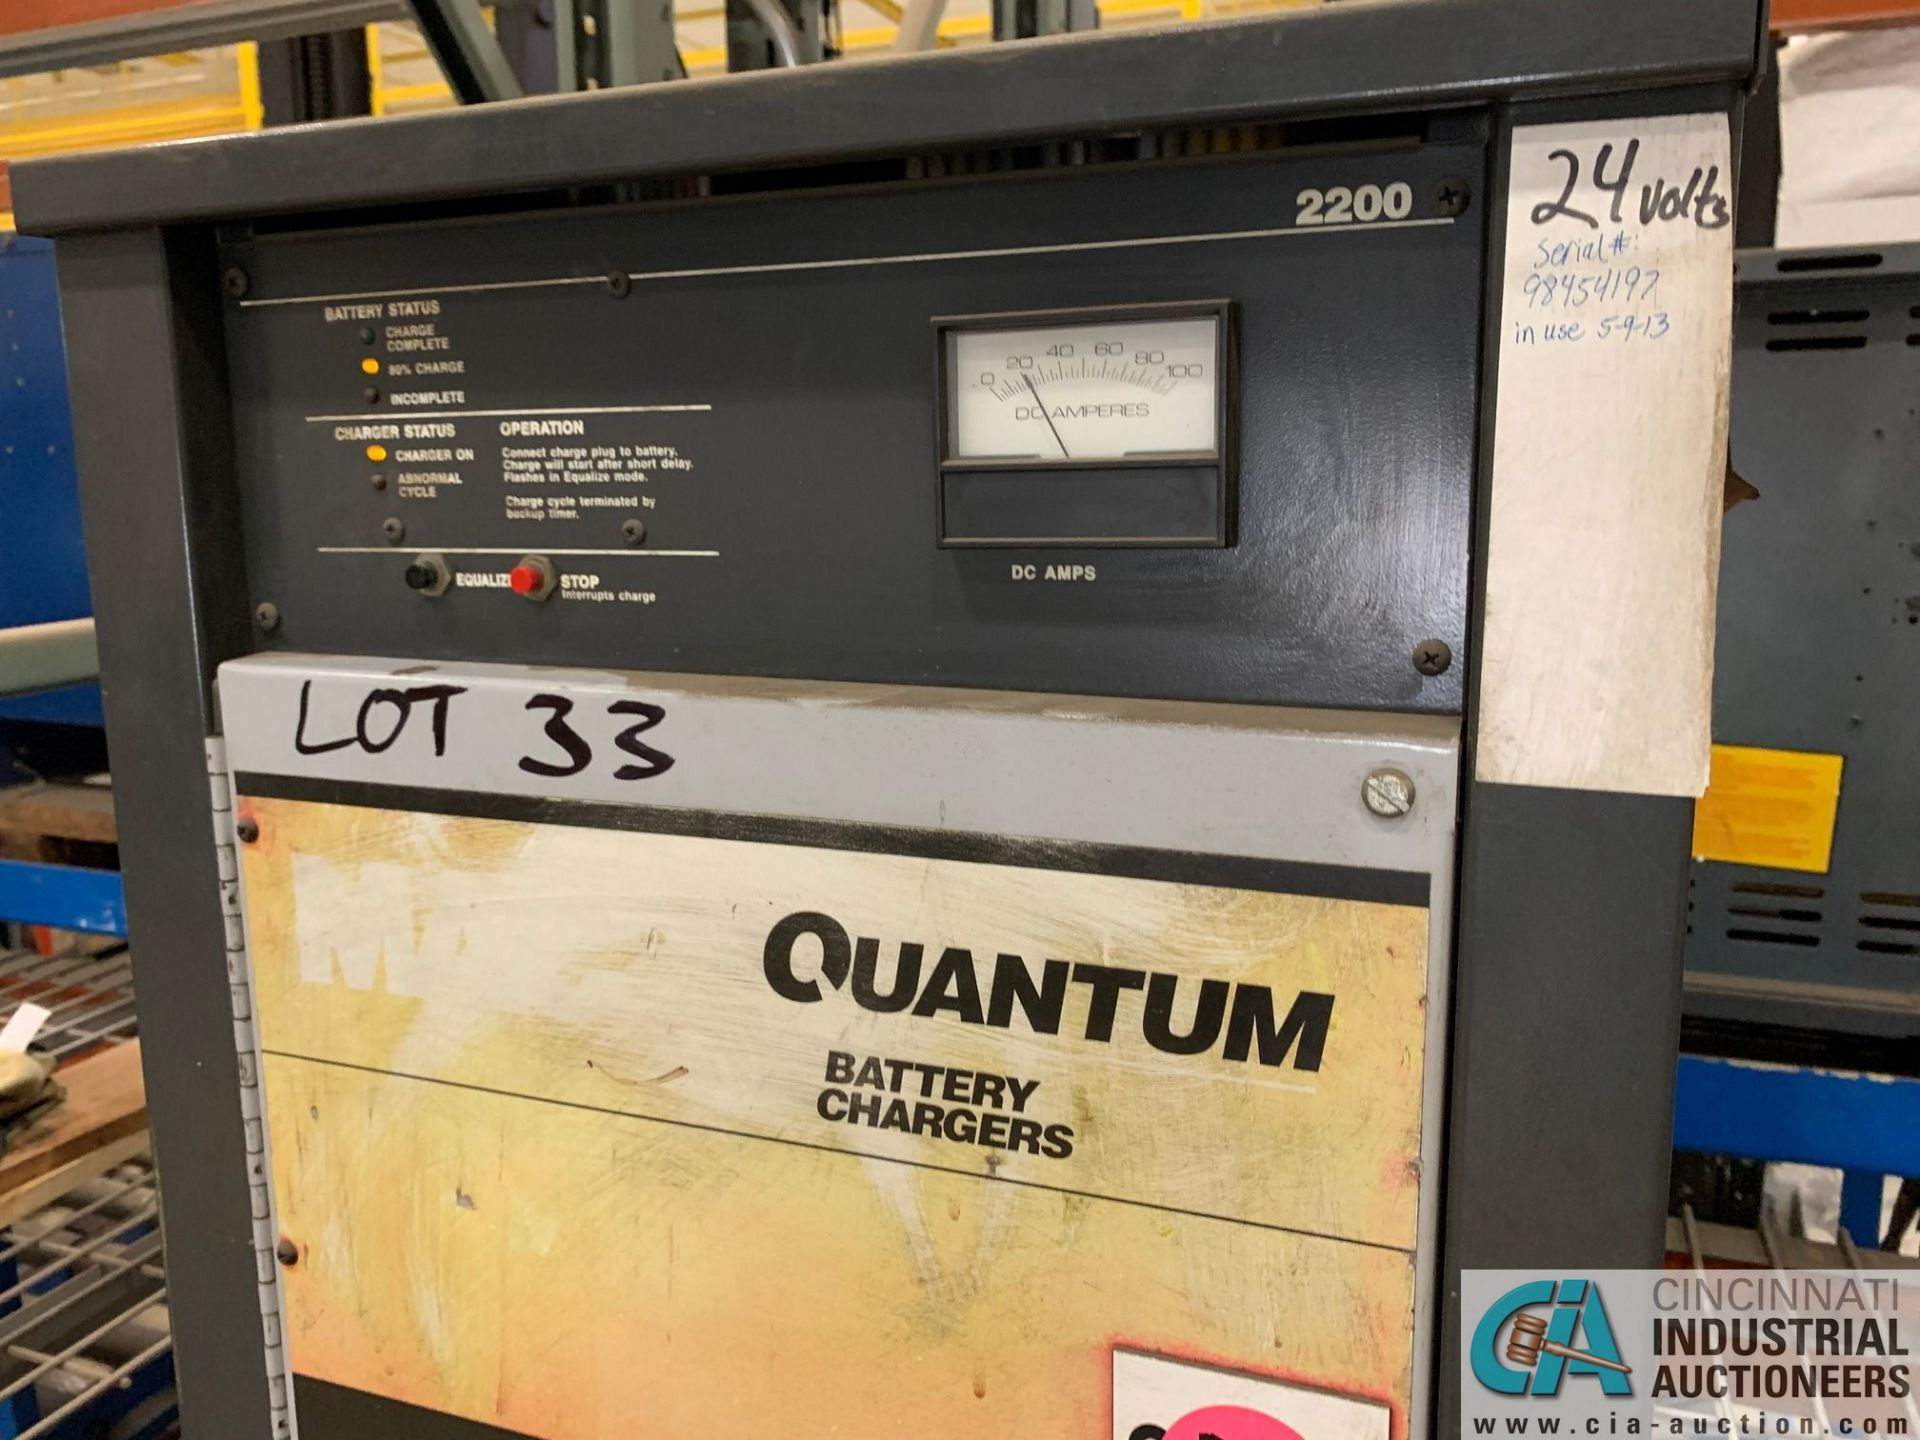 24-VOLT QUANTUM MODEL 12Q450B2A BATTERY CHARGER; S/N 98454197 (5400 OAKLEY INDUSTRIAL BLVD., - Image 3 of 3